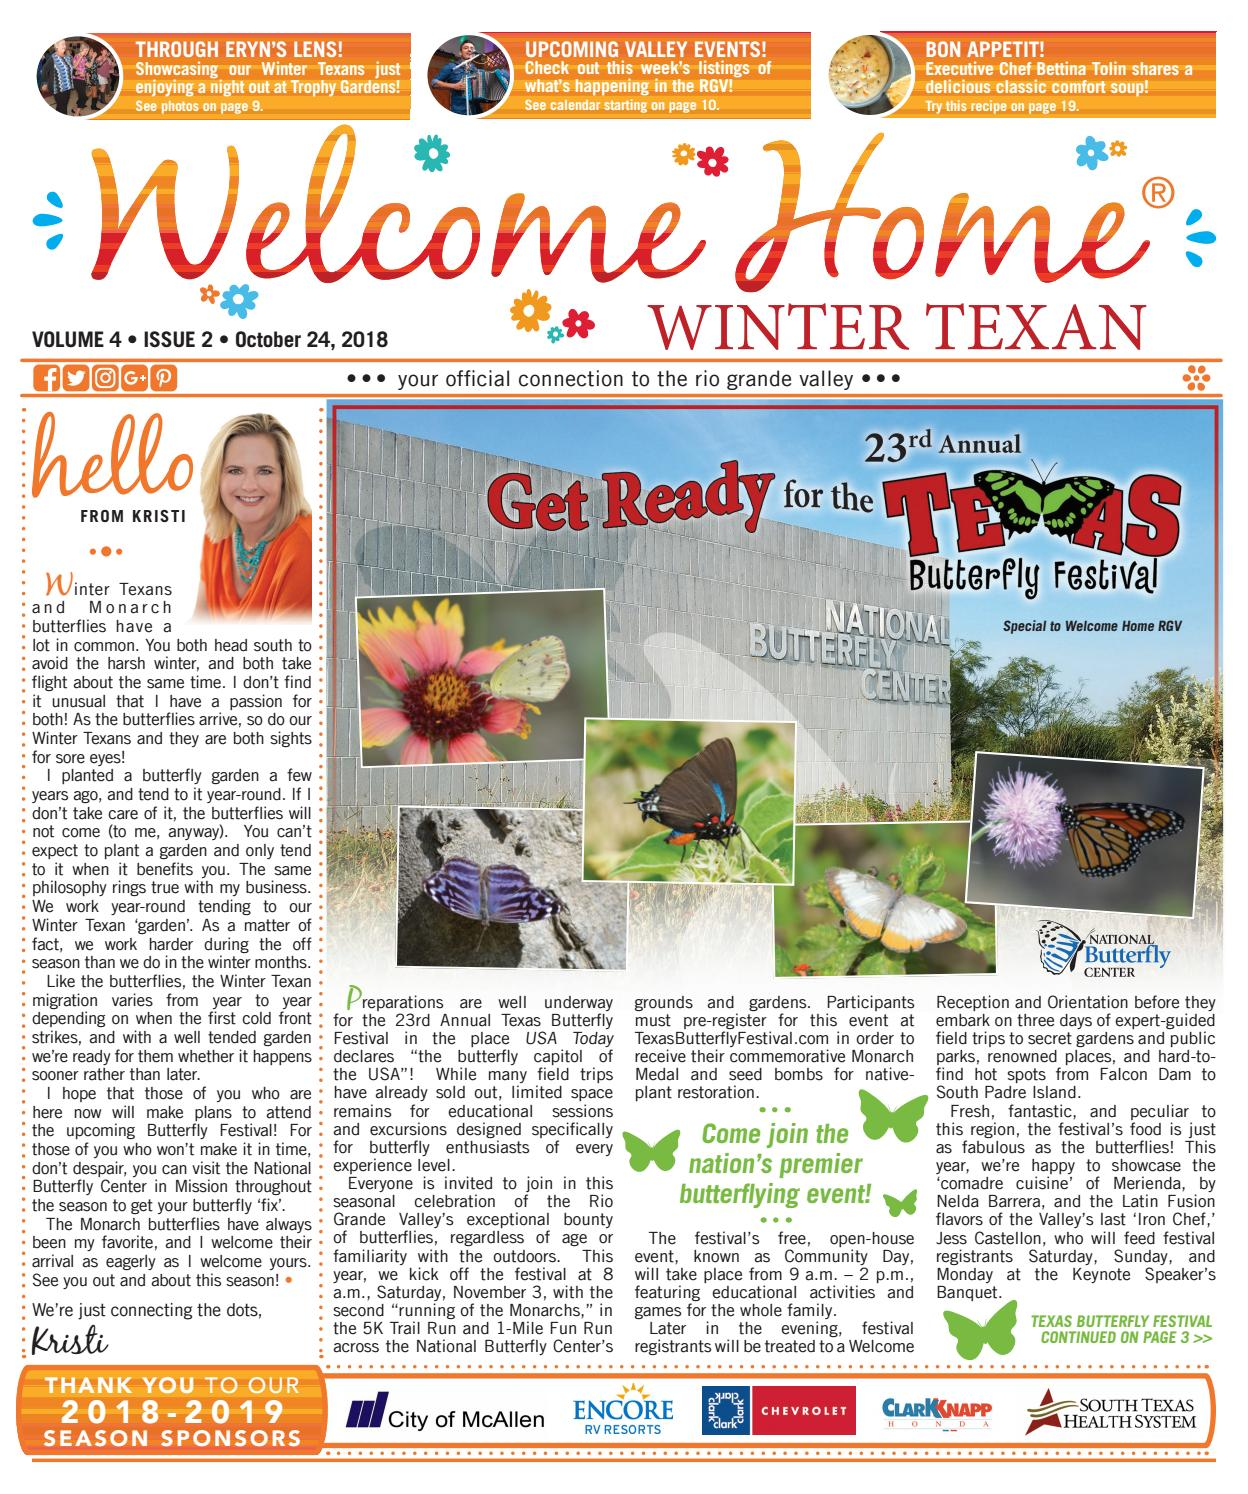 Welcome Home Winter Texan : Vol 4 Issue 2 : October 24, 2018 by